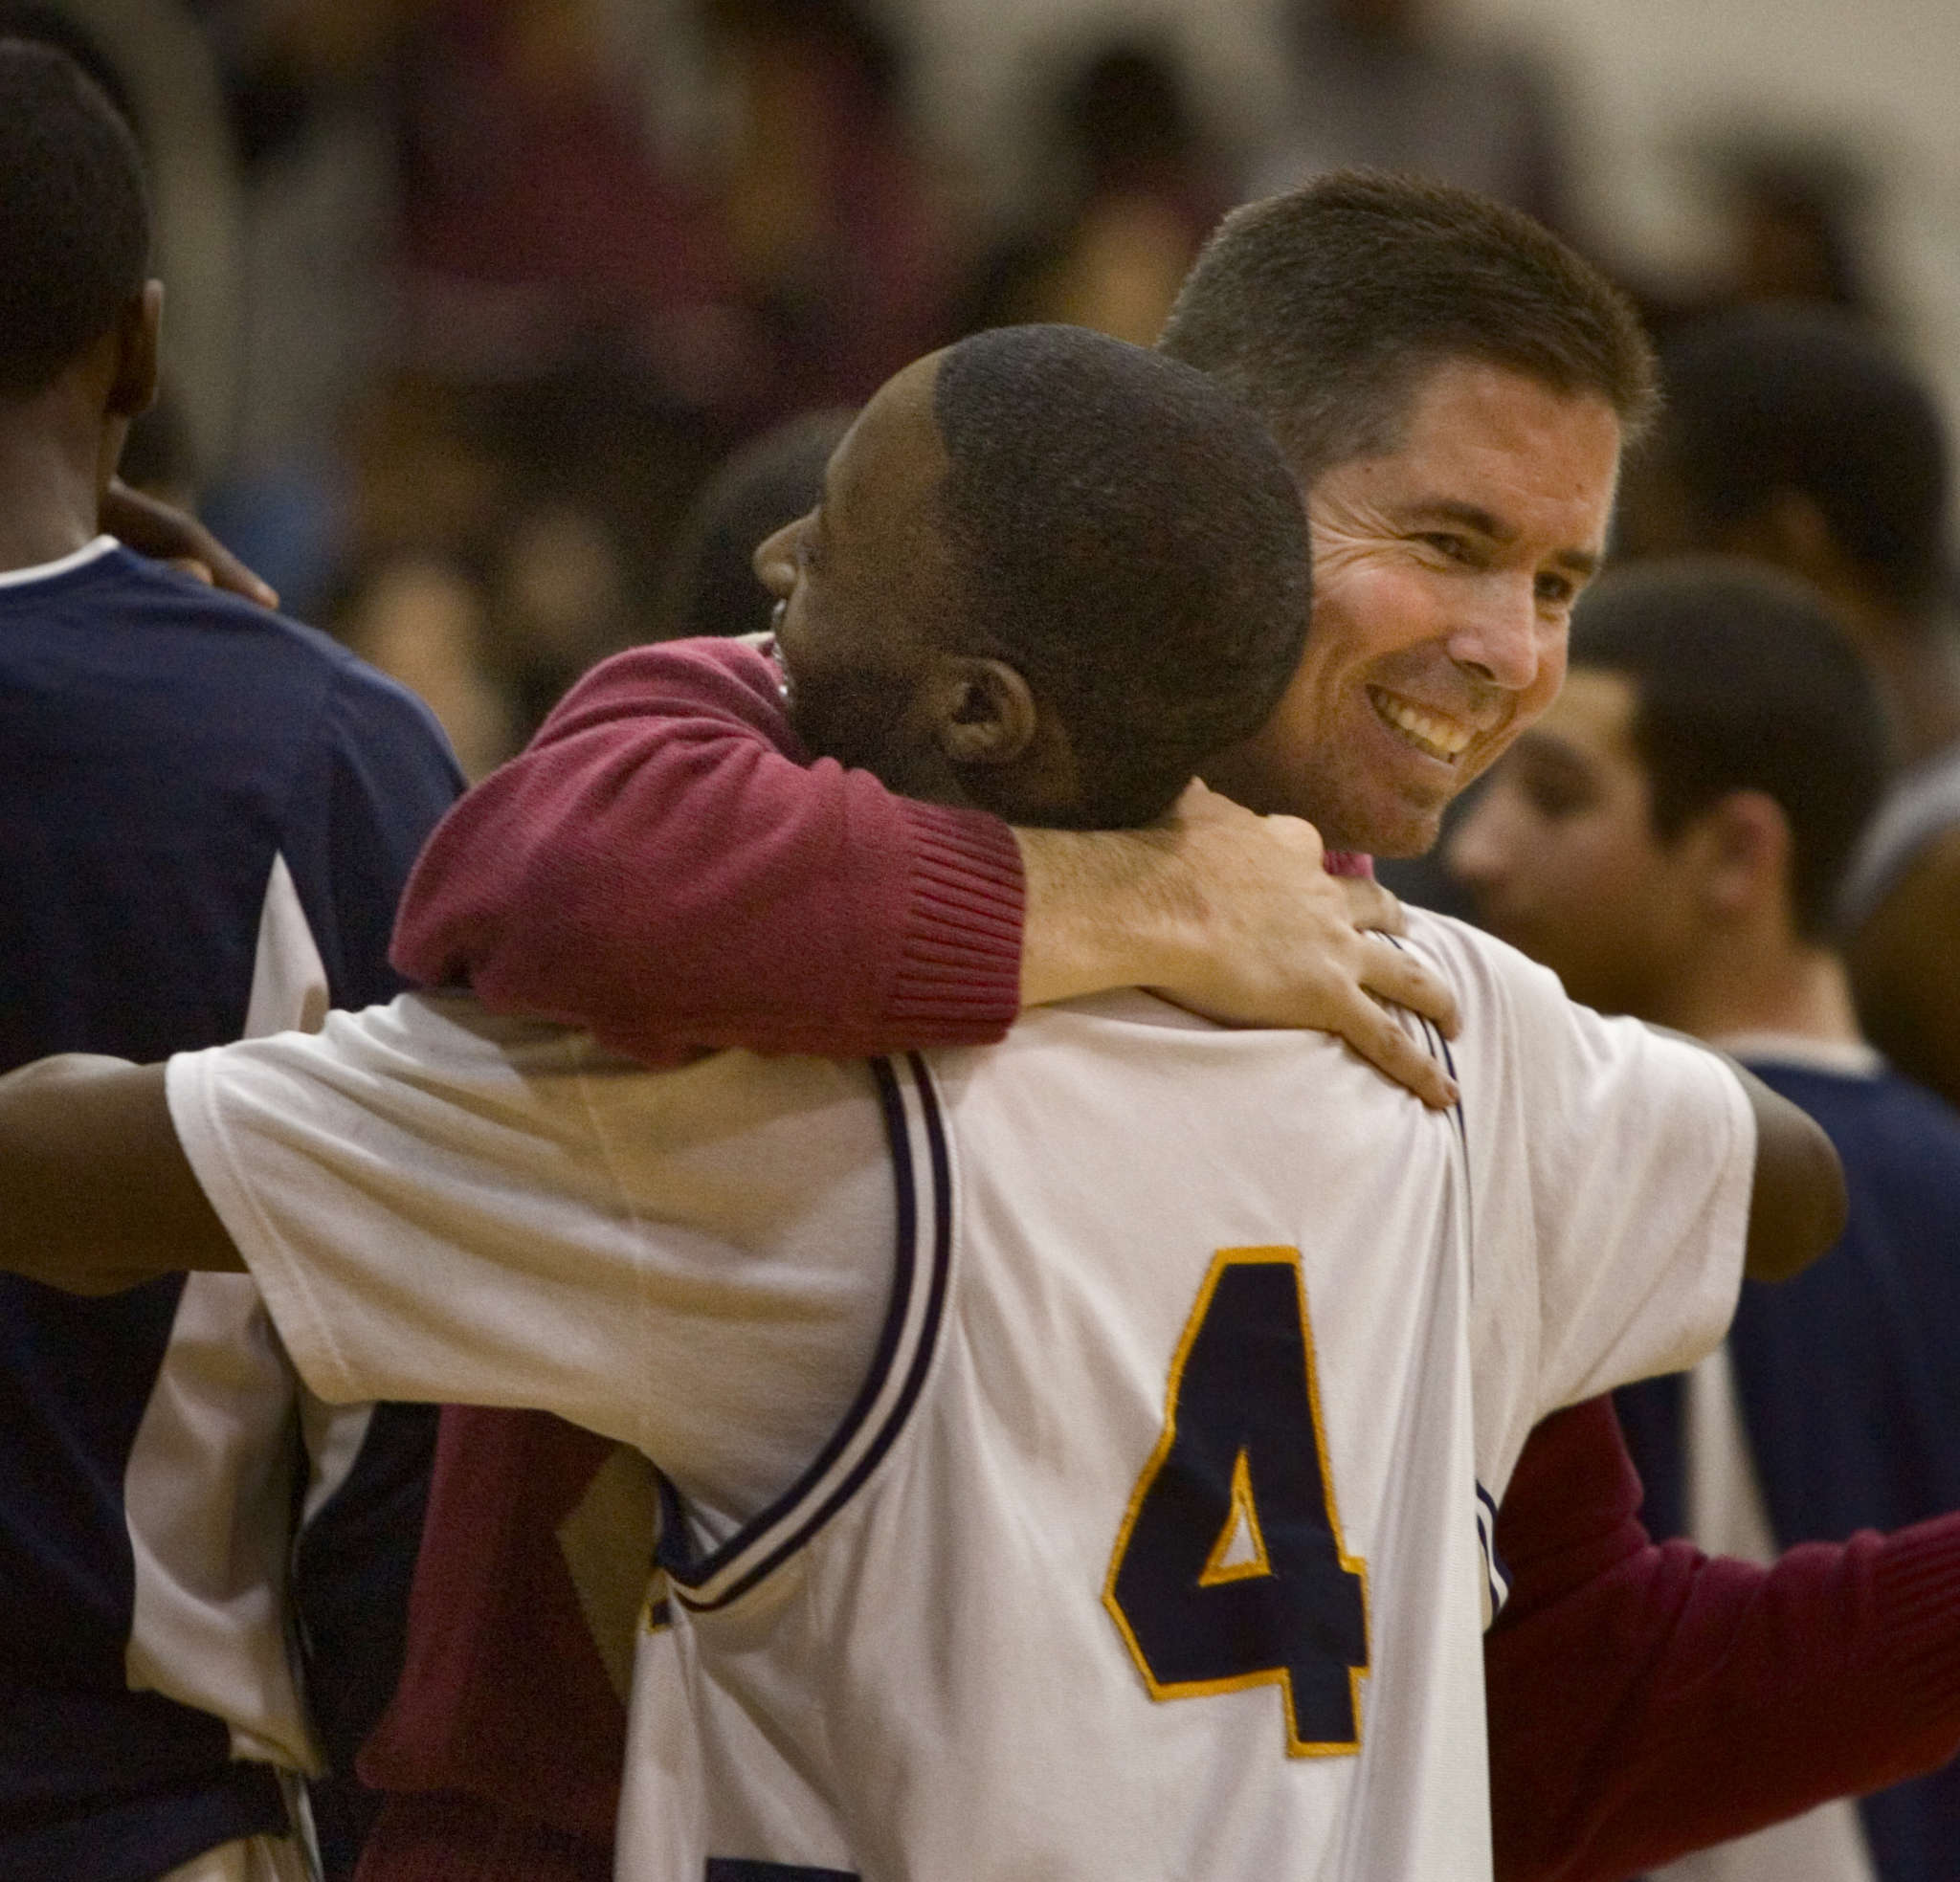 Then-Collingswood coach Joe McLoughlin hugs Tawan Austin after a 2007 win. Not rehired in 2012, he sued the district, saying he was let go for resisting pressure to include more white players on his team. He dropped the suit for a $250,000 settlement.